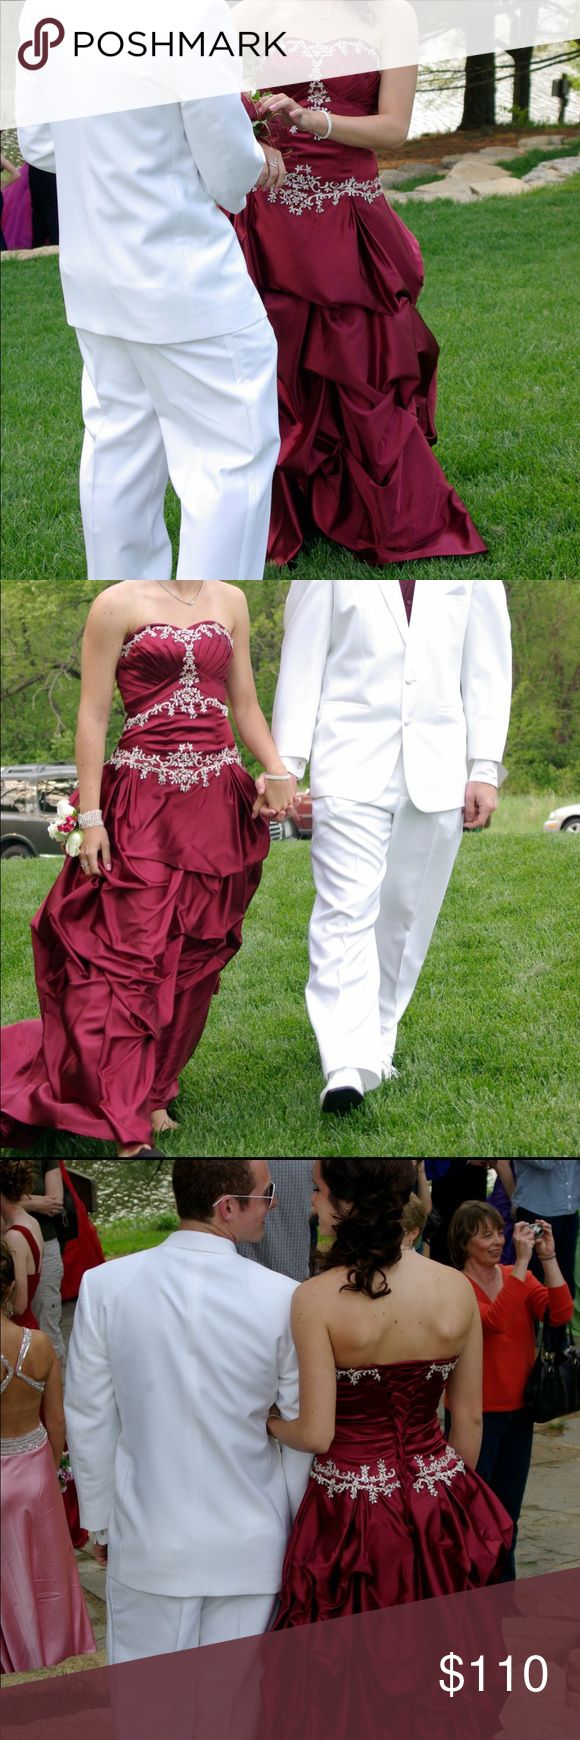 "Burgundy prom dress Absolutely stunning dress from Blossom's Bridal. Worn once to a dance and in great condition. Model in pictures is 5'7"" and 135 lbs Blossom's Bridal Dresses Prom"